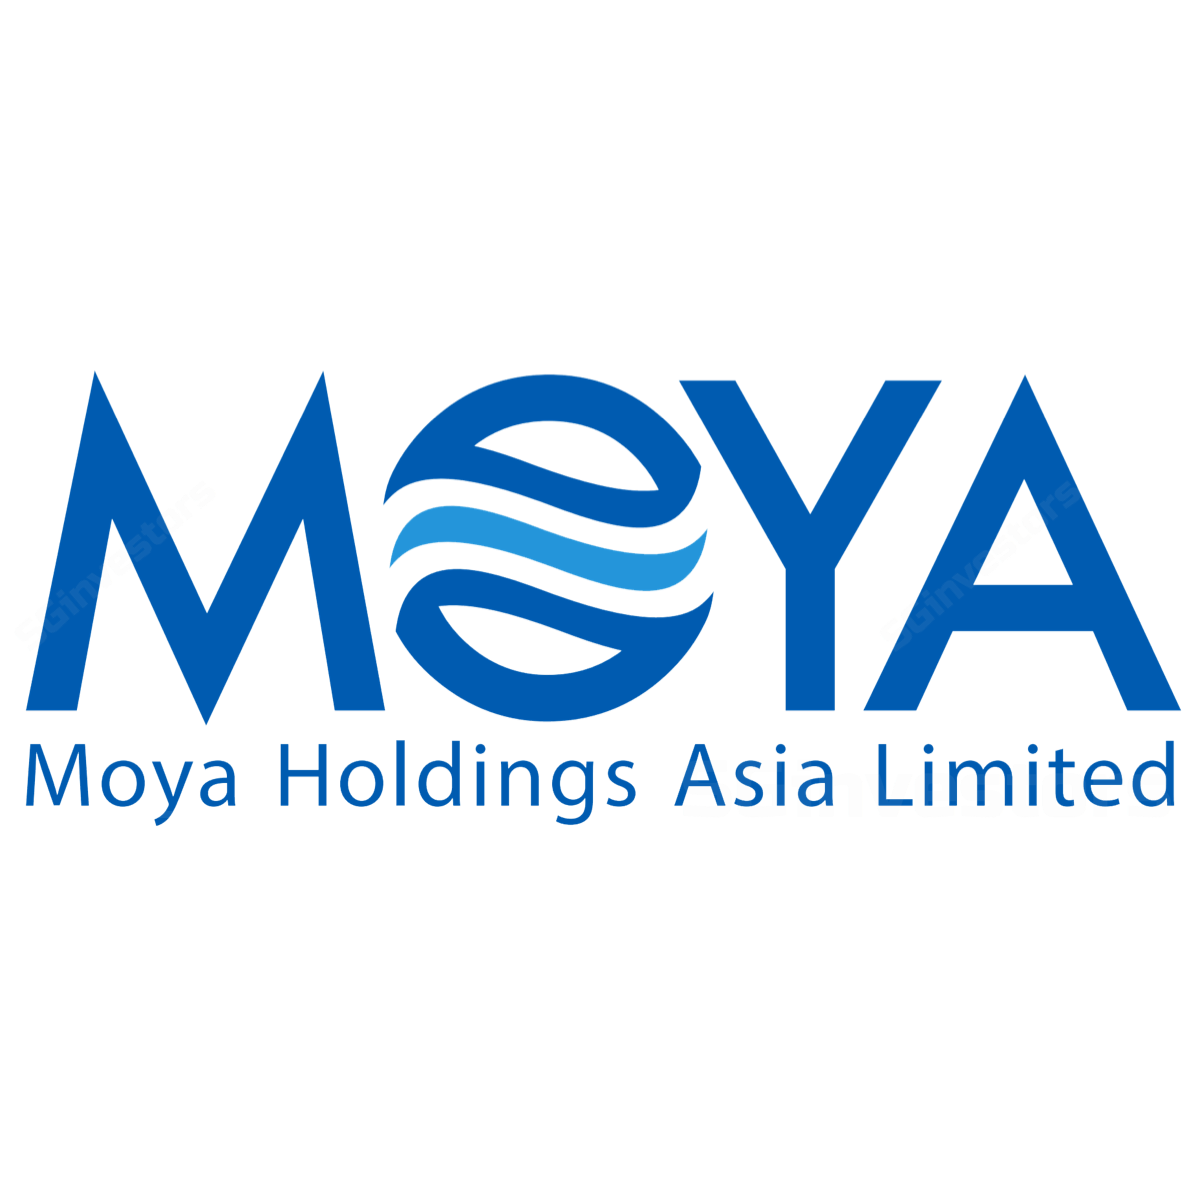 Moya Holdings Asia Limited